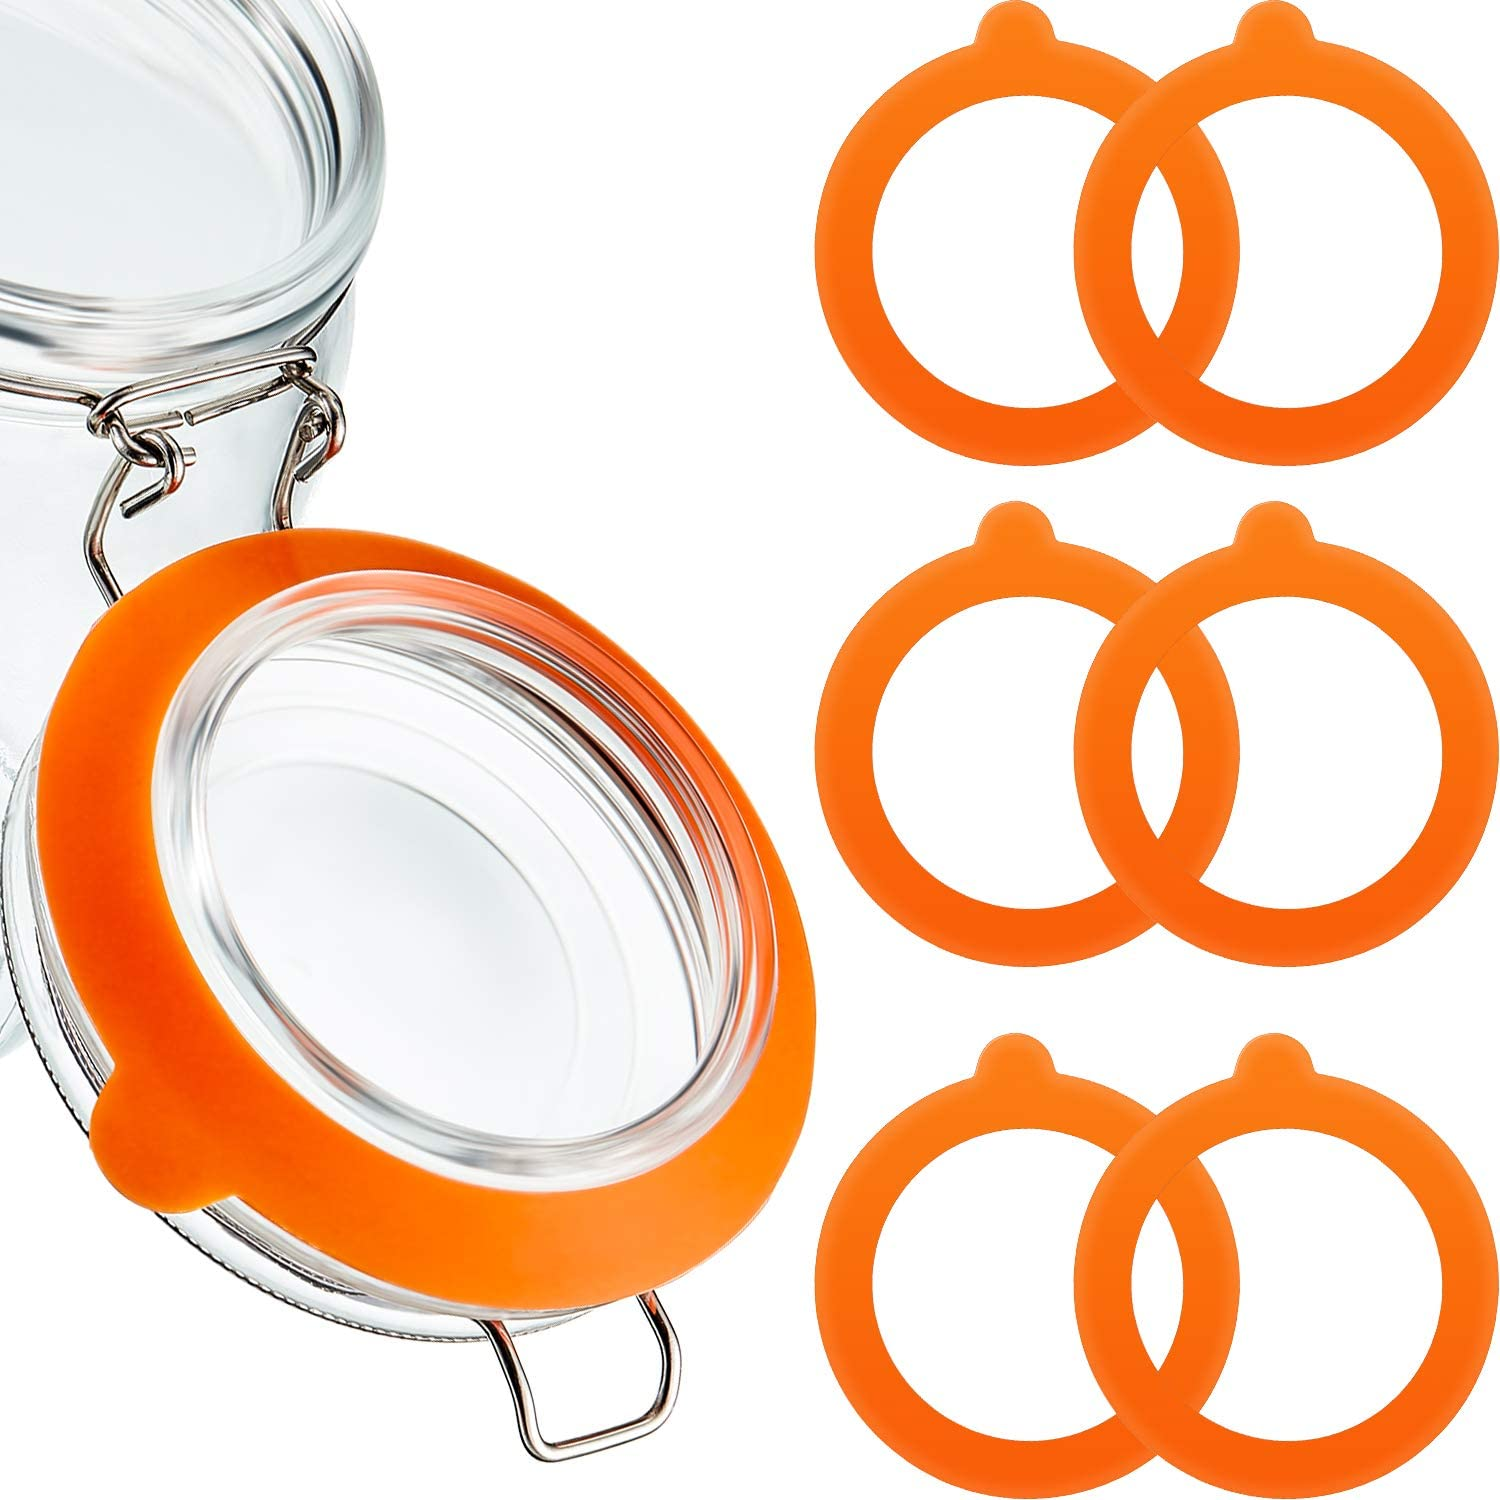 15 Pieces Silicone Jar Gaskets Replacement Silicone Seals Silicone Replacement Gasket Seals Fits Regular Mouth Canning Jars Orange 3.75 Inches